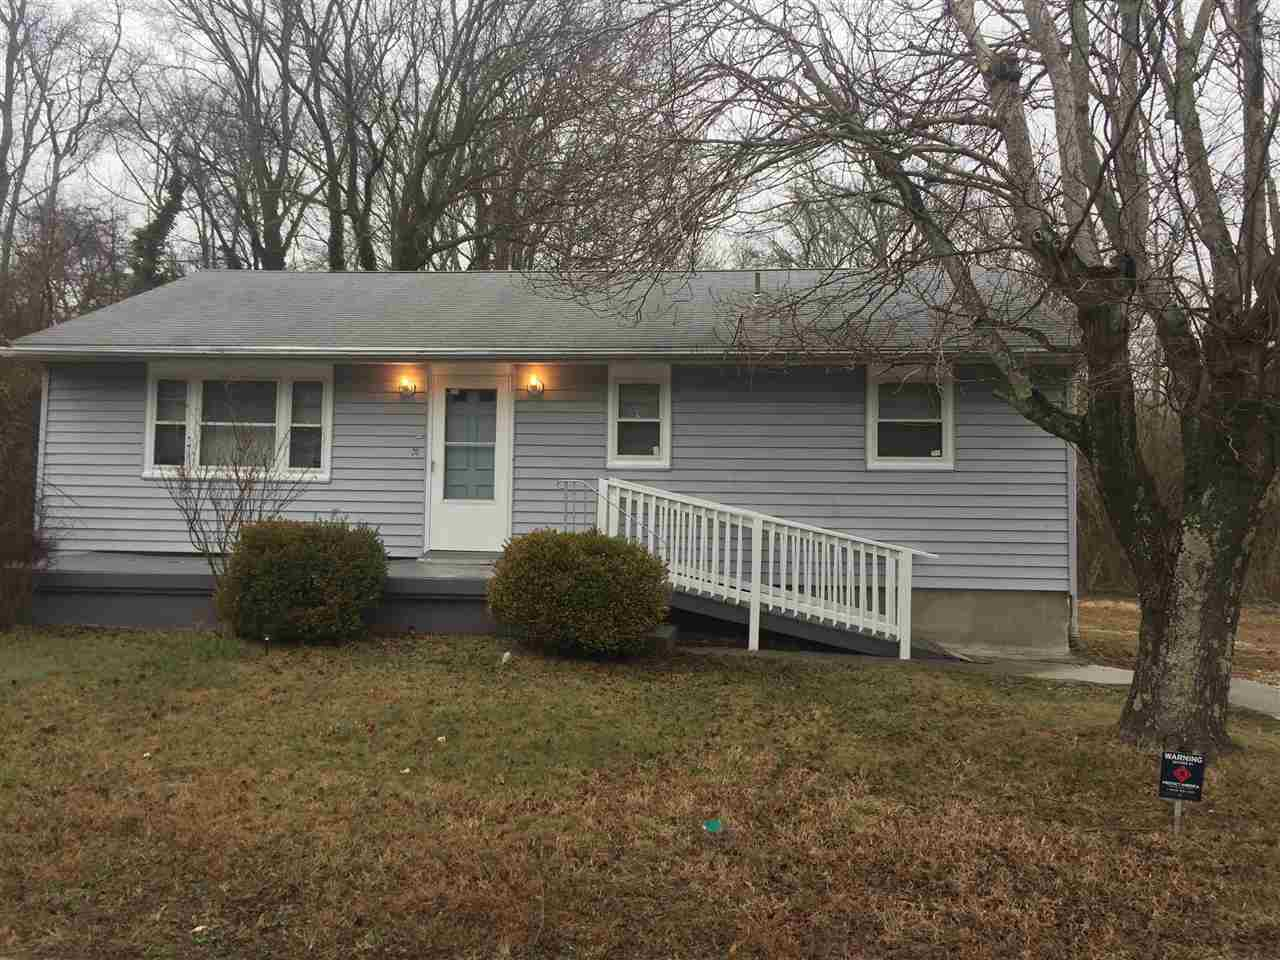 20 E Wiley  - Cape May Court House